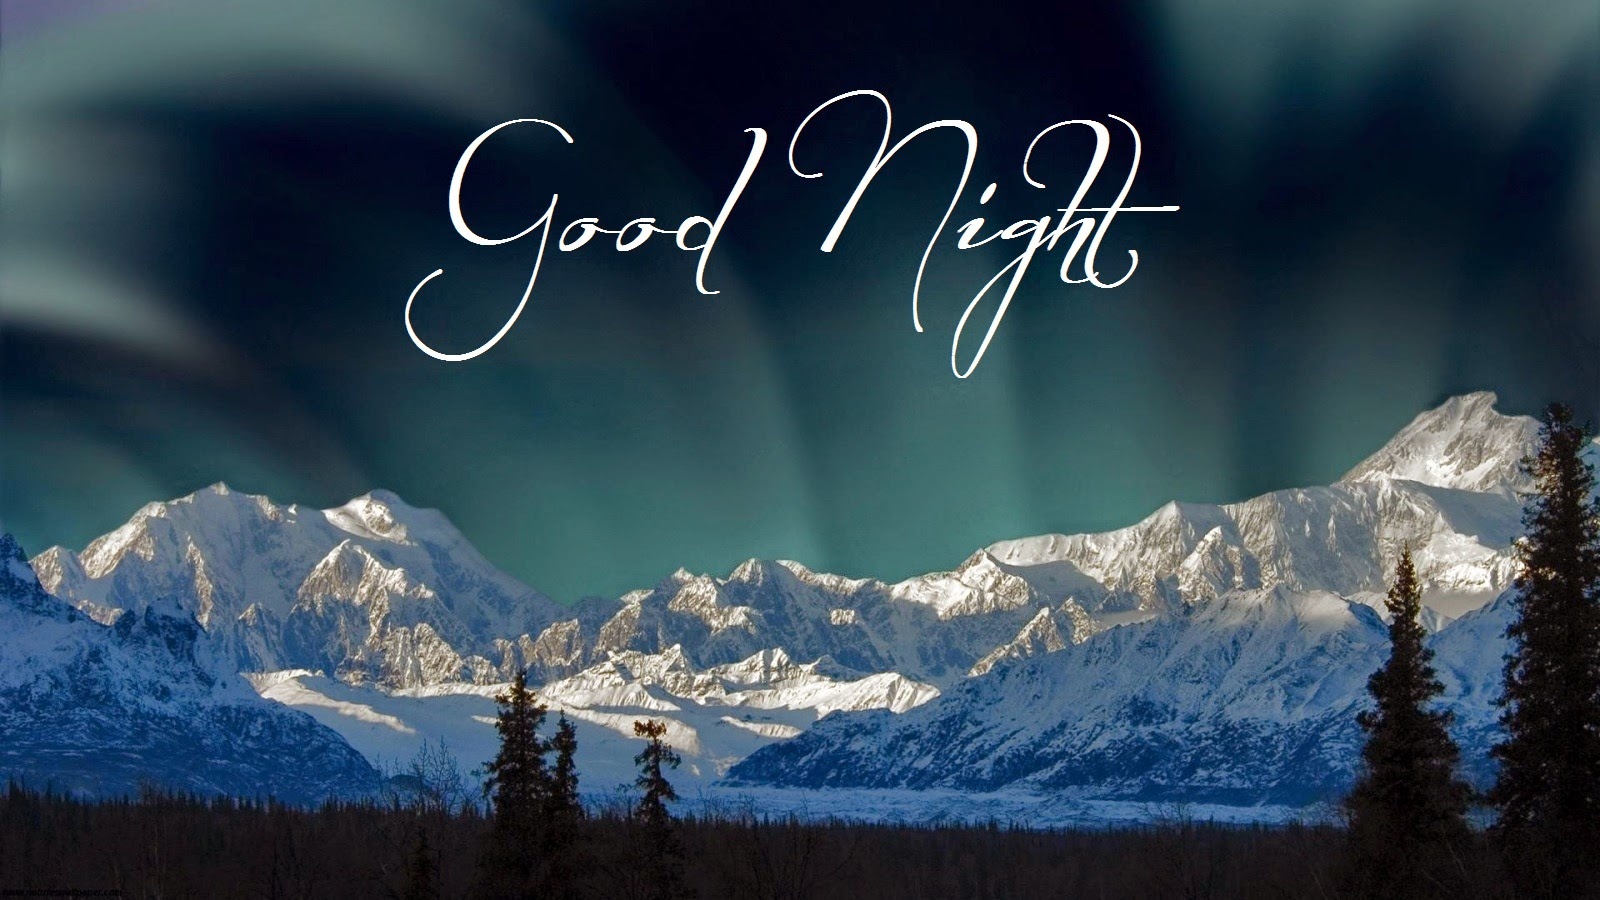 Good Night Images HD Wallpapers